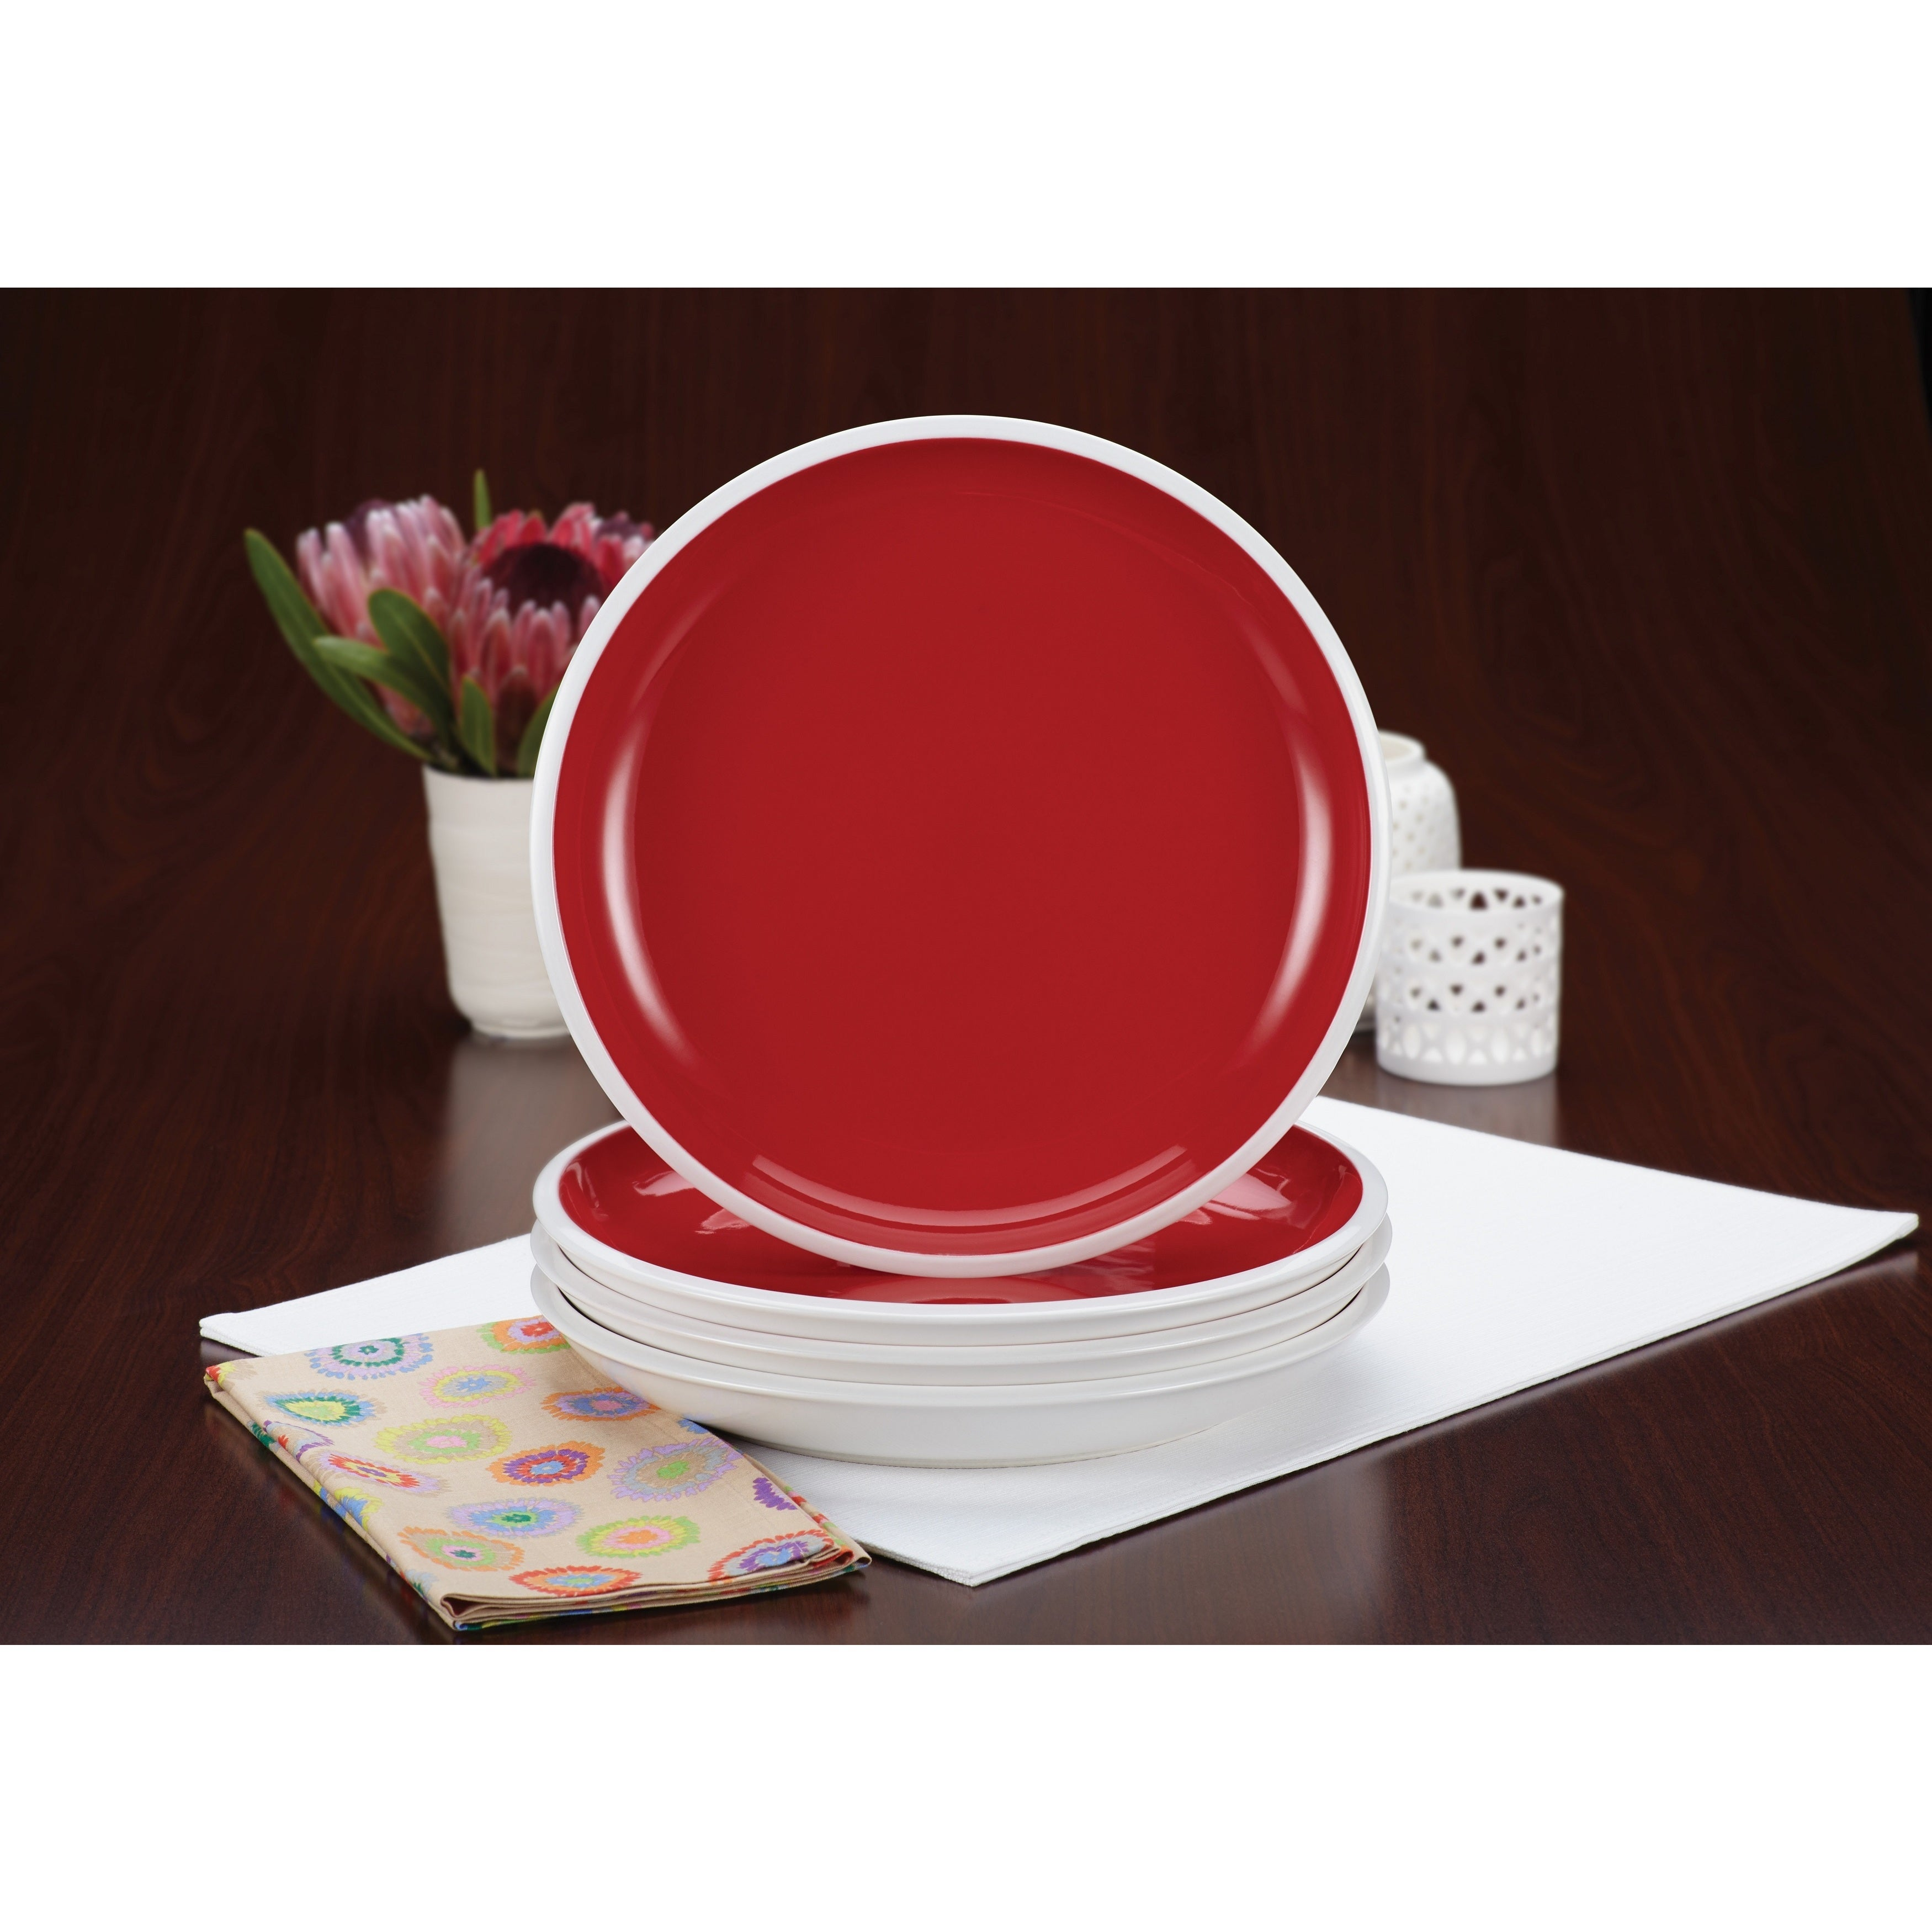 Rachael Ray Dinnerware Rise 4-piece 11-inch Red Dinner Plate Set - Ships To Canada - Overstock - 15836657  sc 1 st  Overstock.ca & Rachael Ray Dinnerware Rise 4-piece 11-inch Red Dinner Plate Set ...